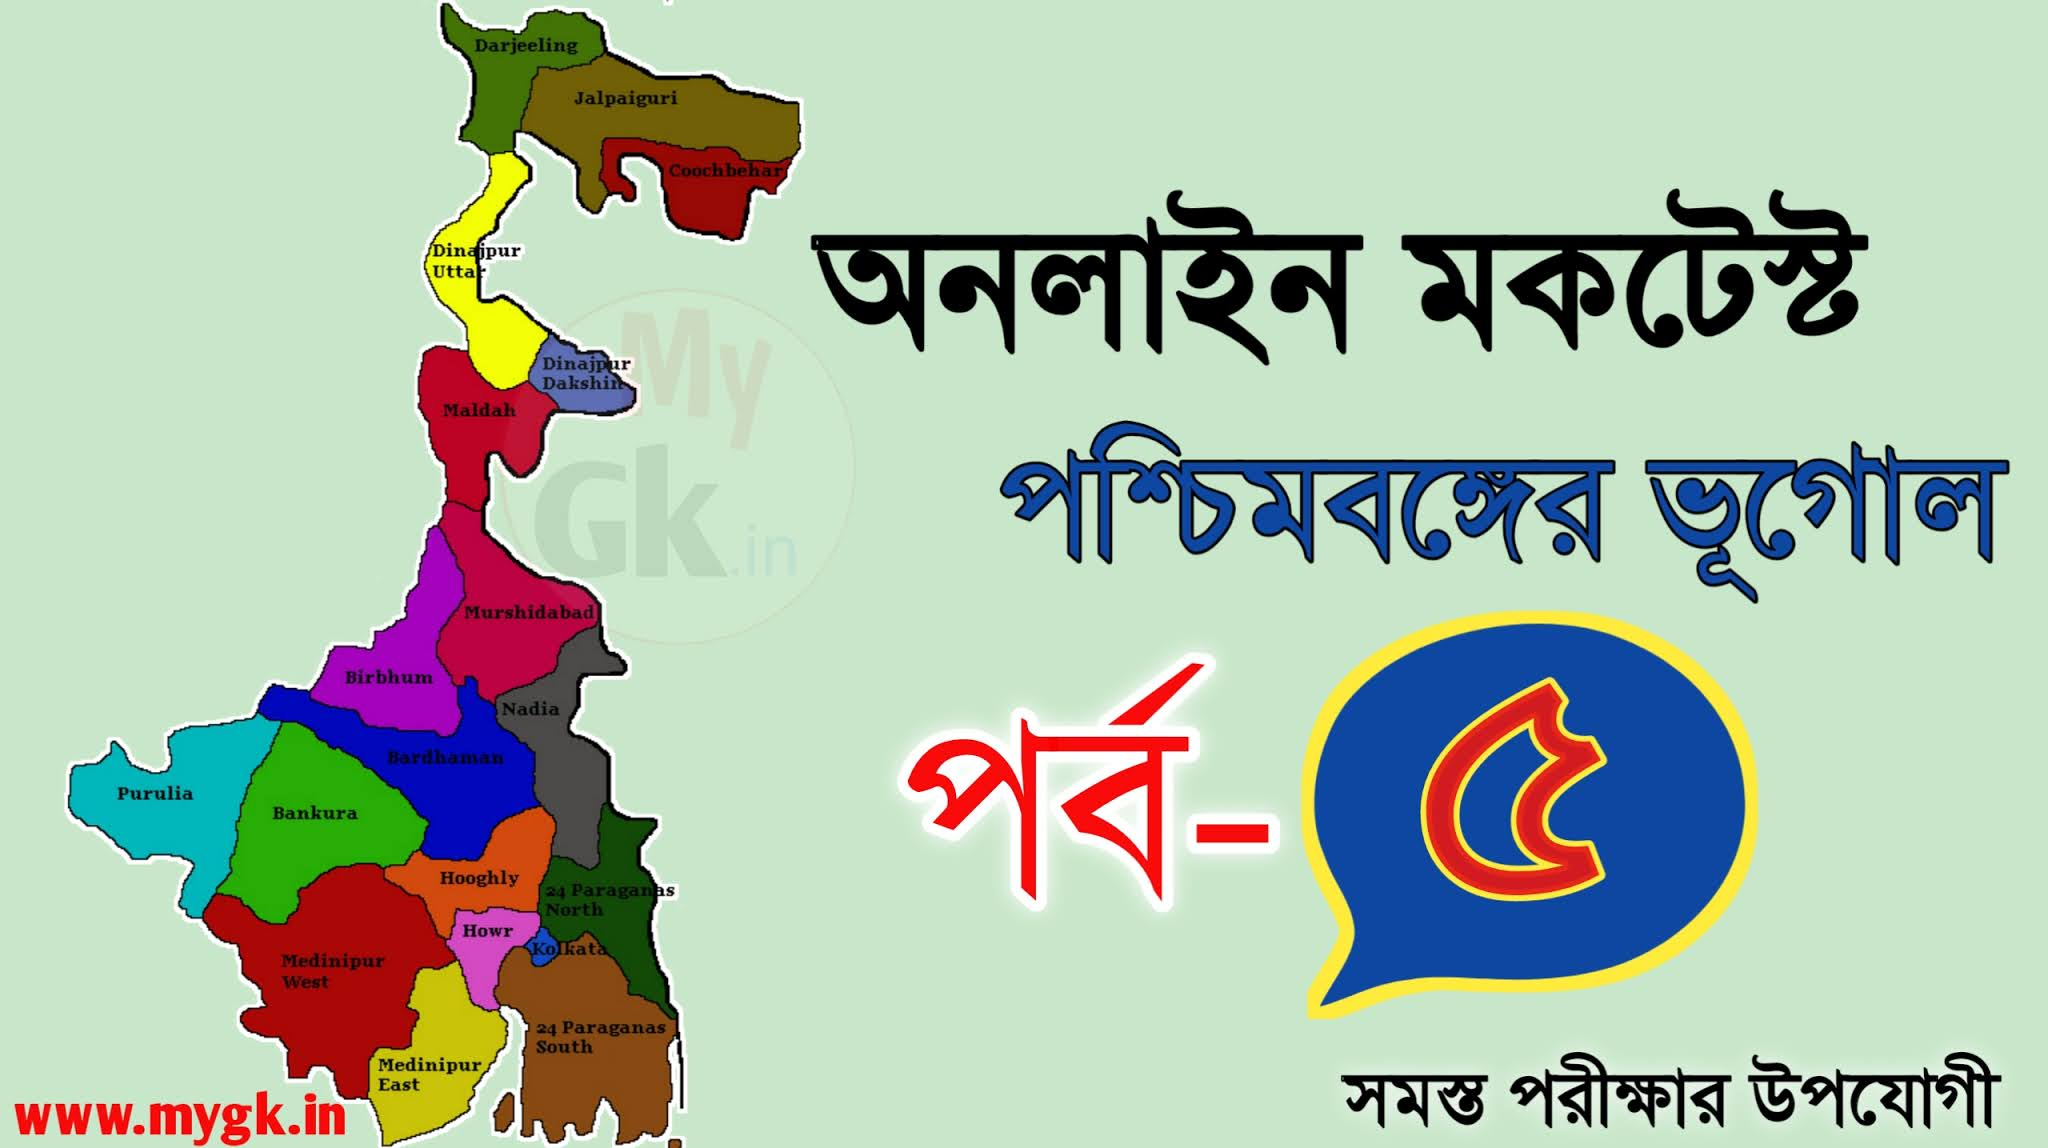 Online Mocktest On Geography of West Bengal (Part- 5) For All Competitive Exams। অনলাইন মকটেস্ট-পশ্চিমবঙ্গের ভূগোল